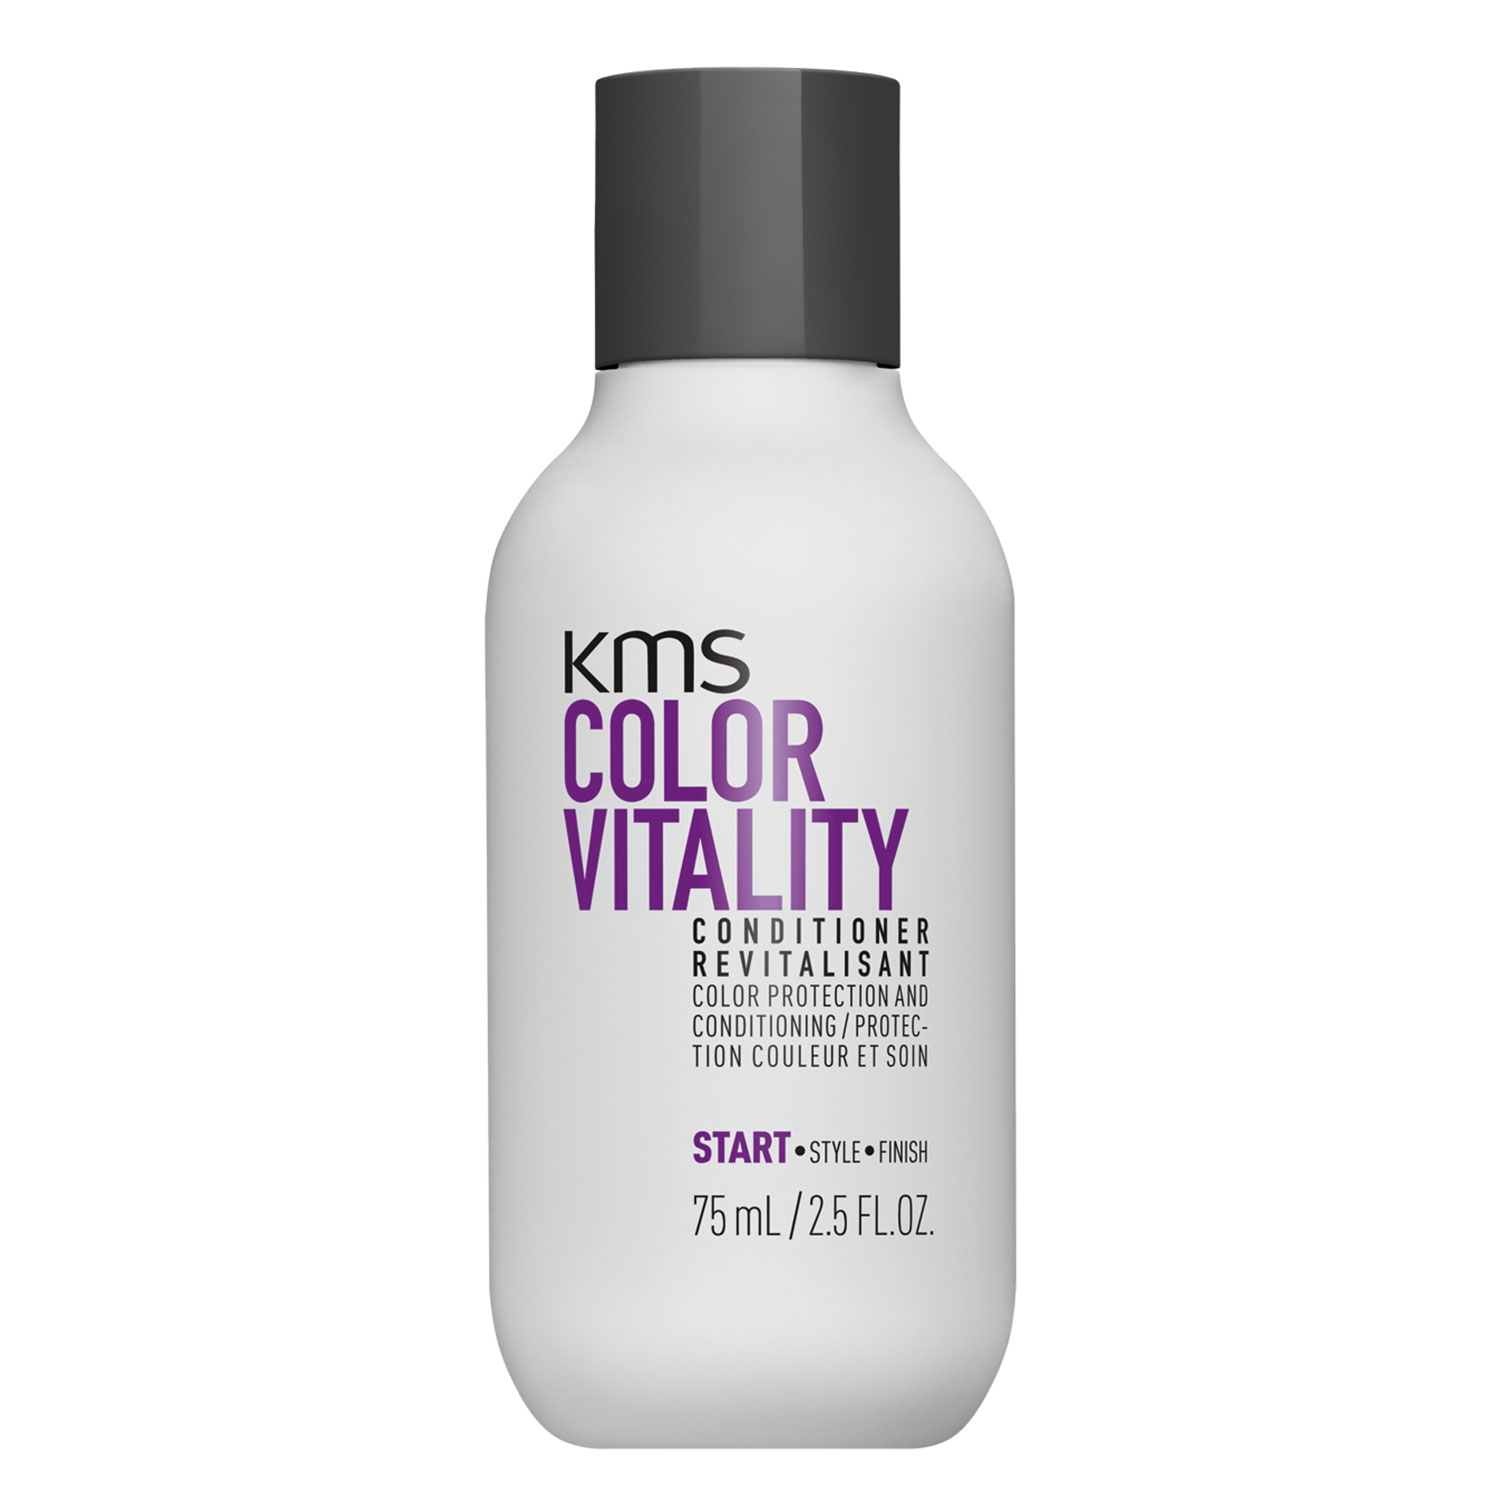 Colorvitality - Conditioner Revitalisant